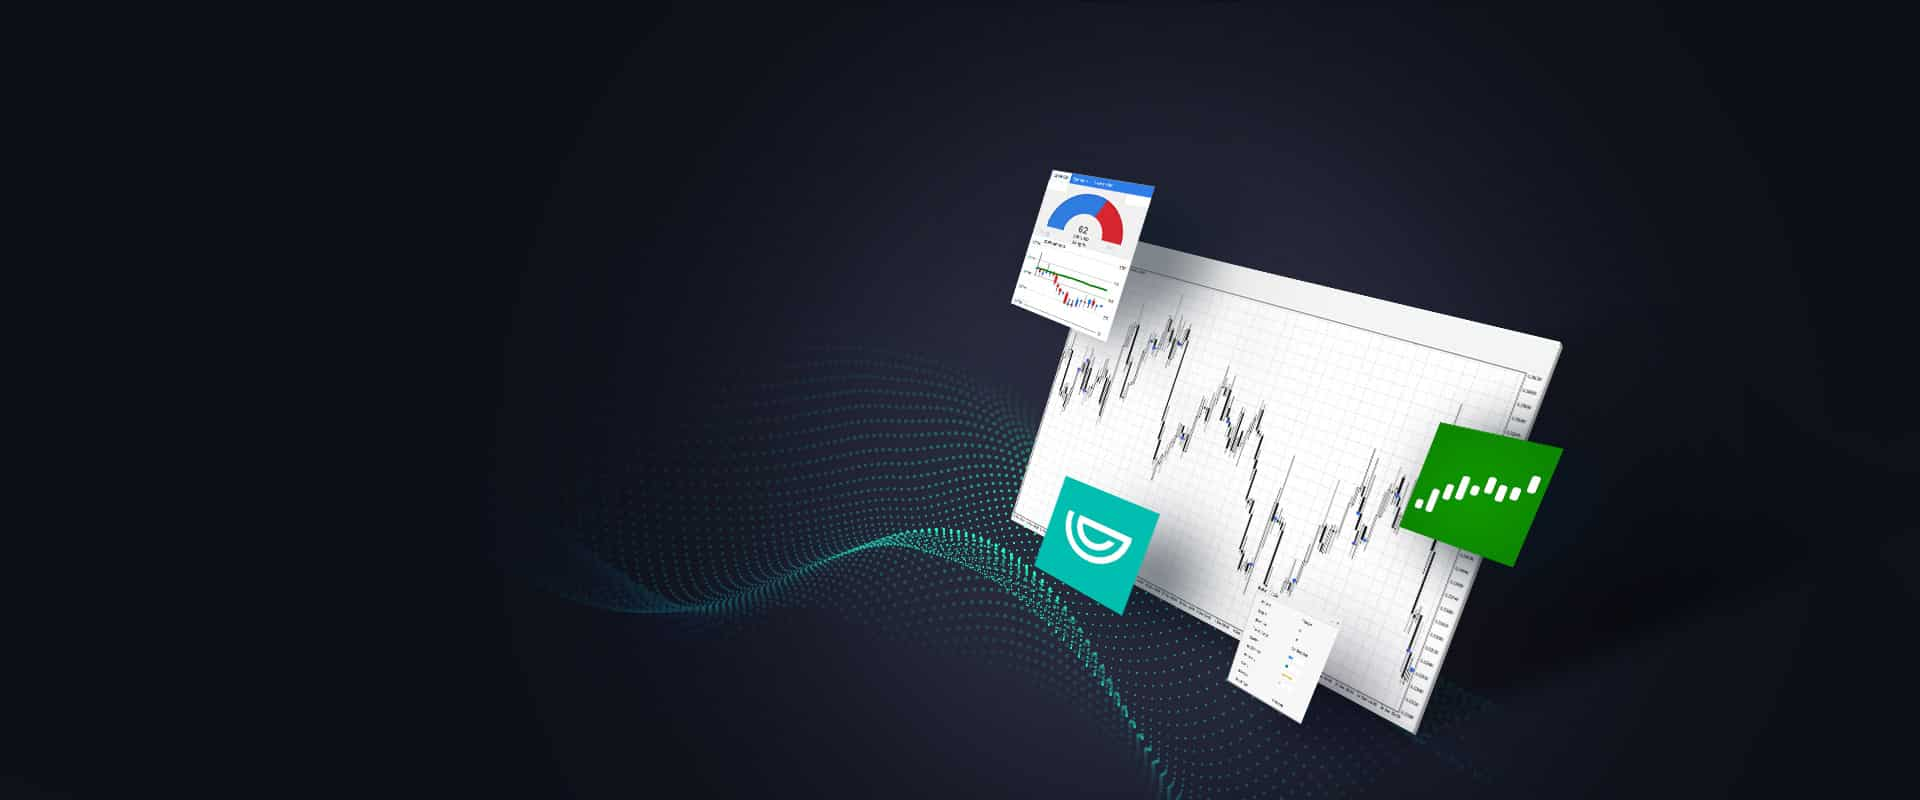 Banner 4 – Trading Tools